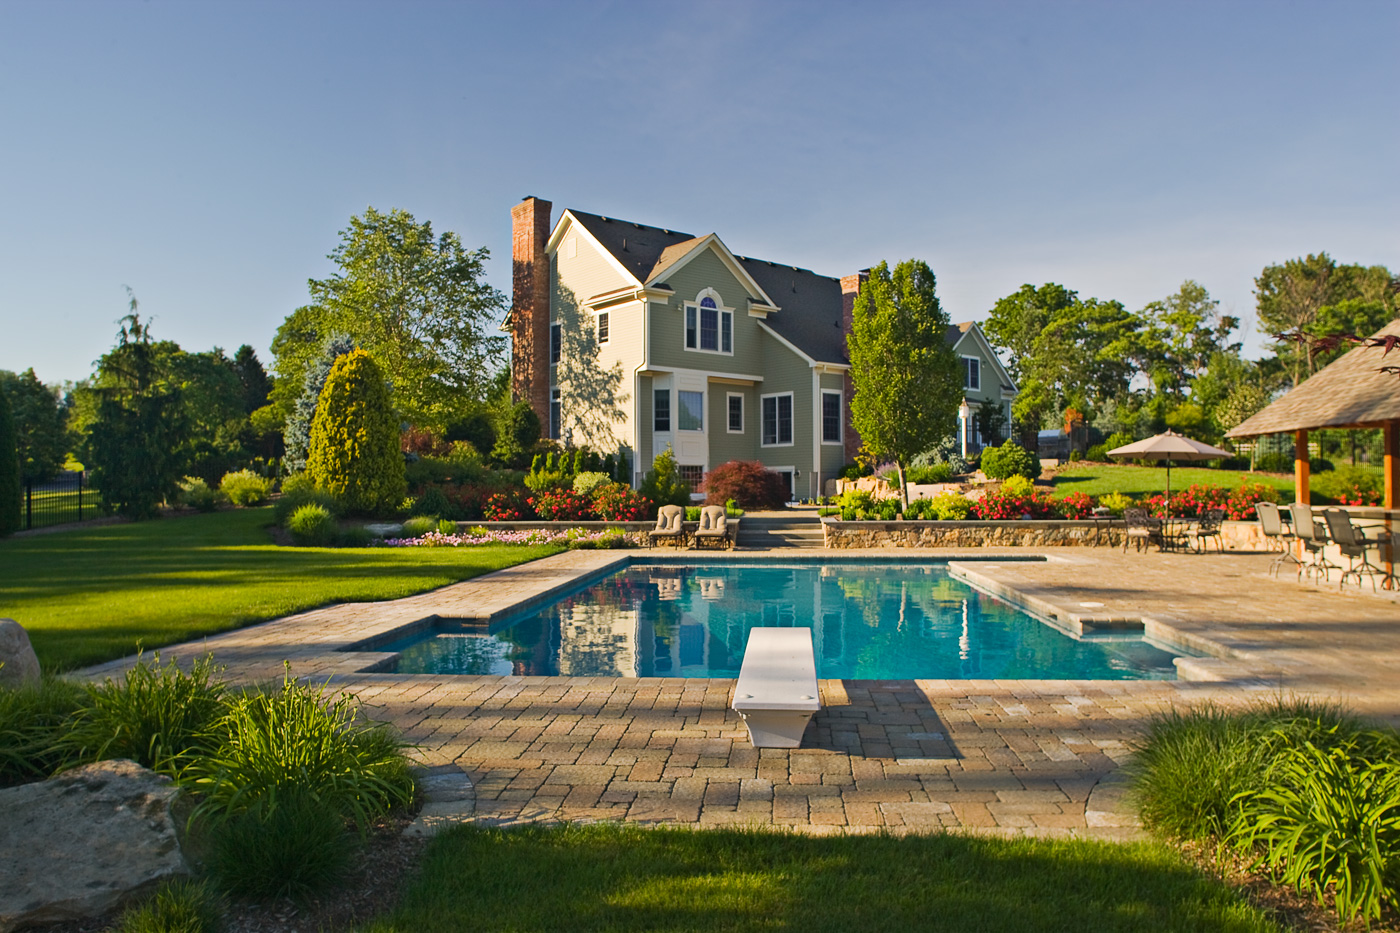 formal swimming pool nj landscaping. Interior Design Ideas. Home Design Ideas